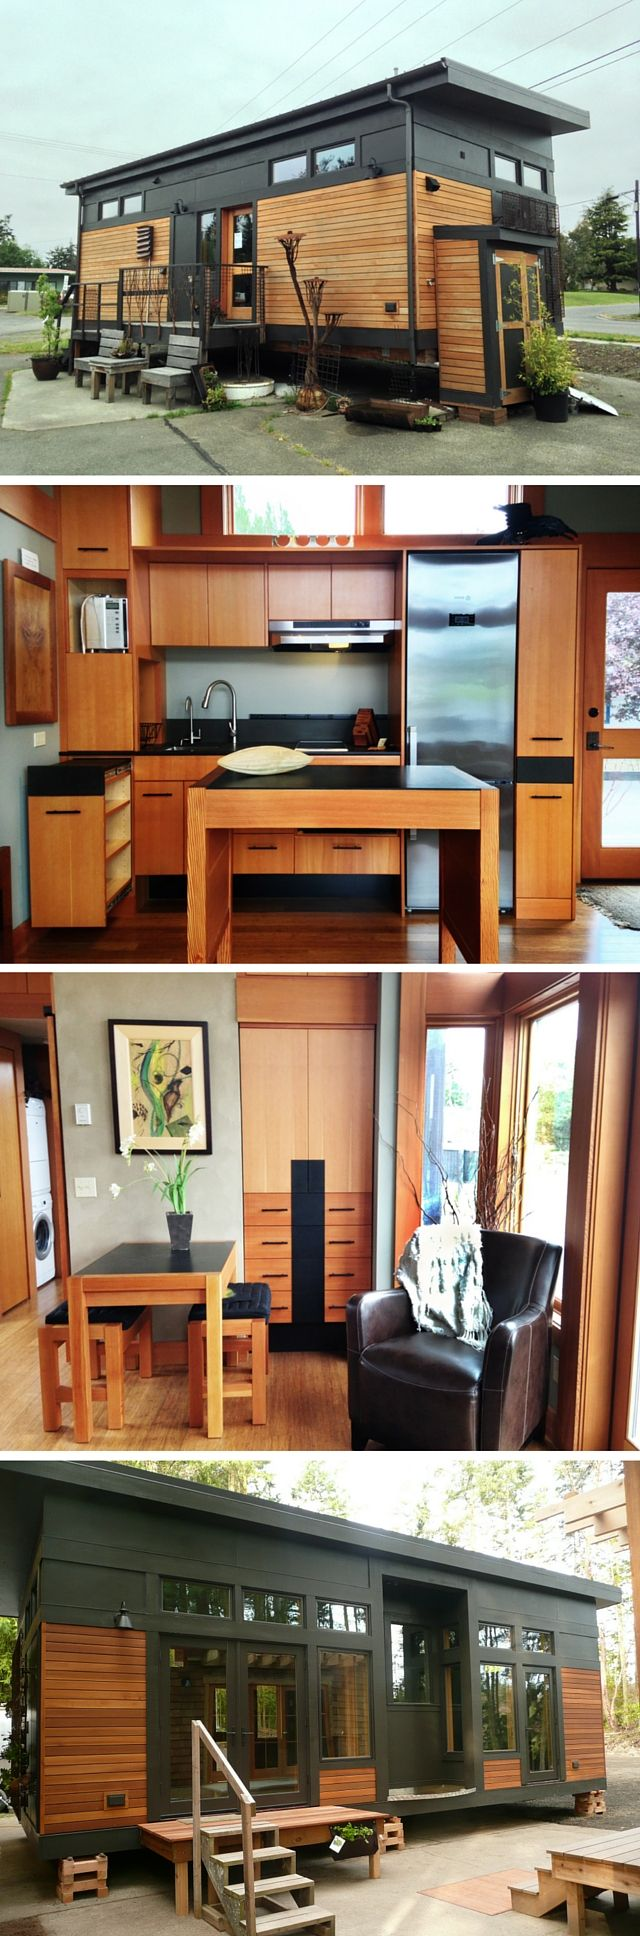 A 450 sq ft tiny house named